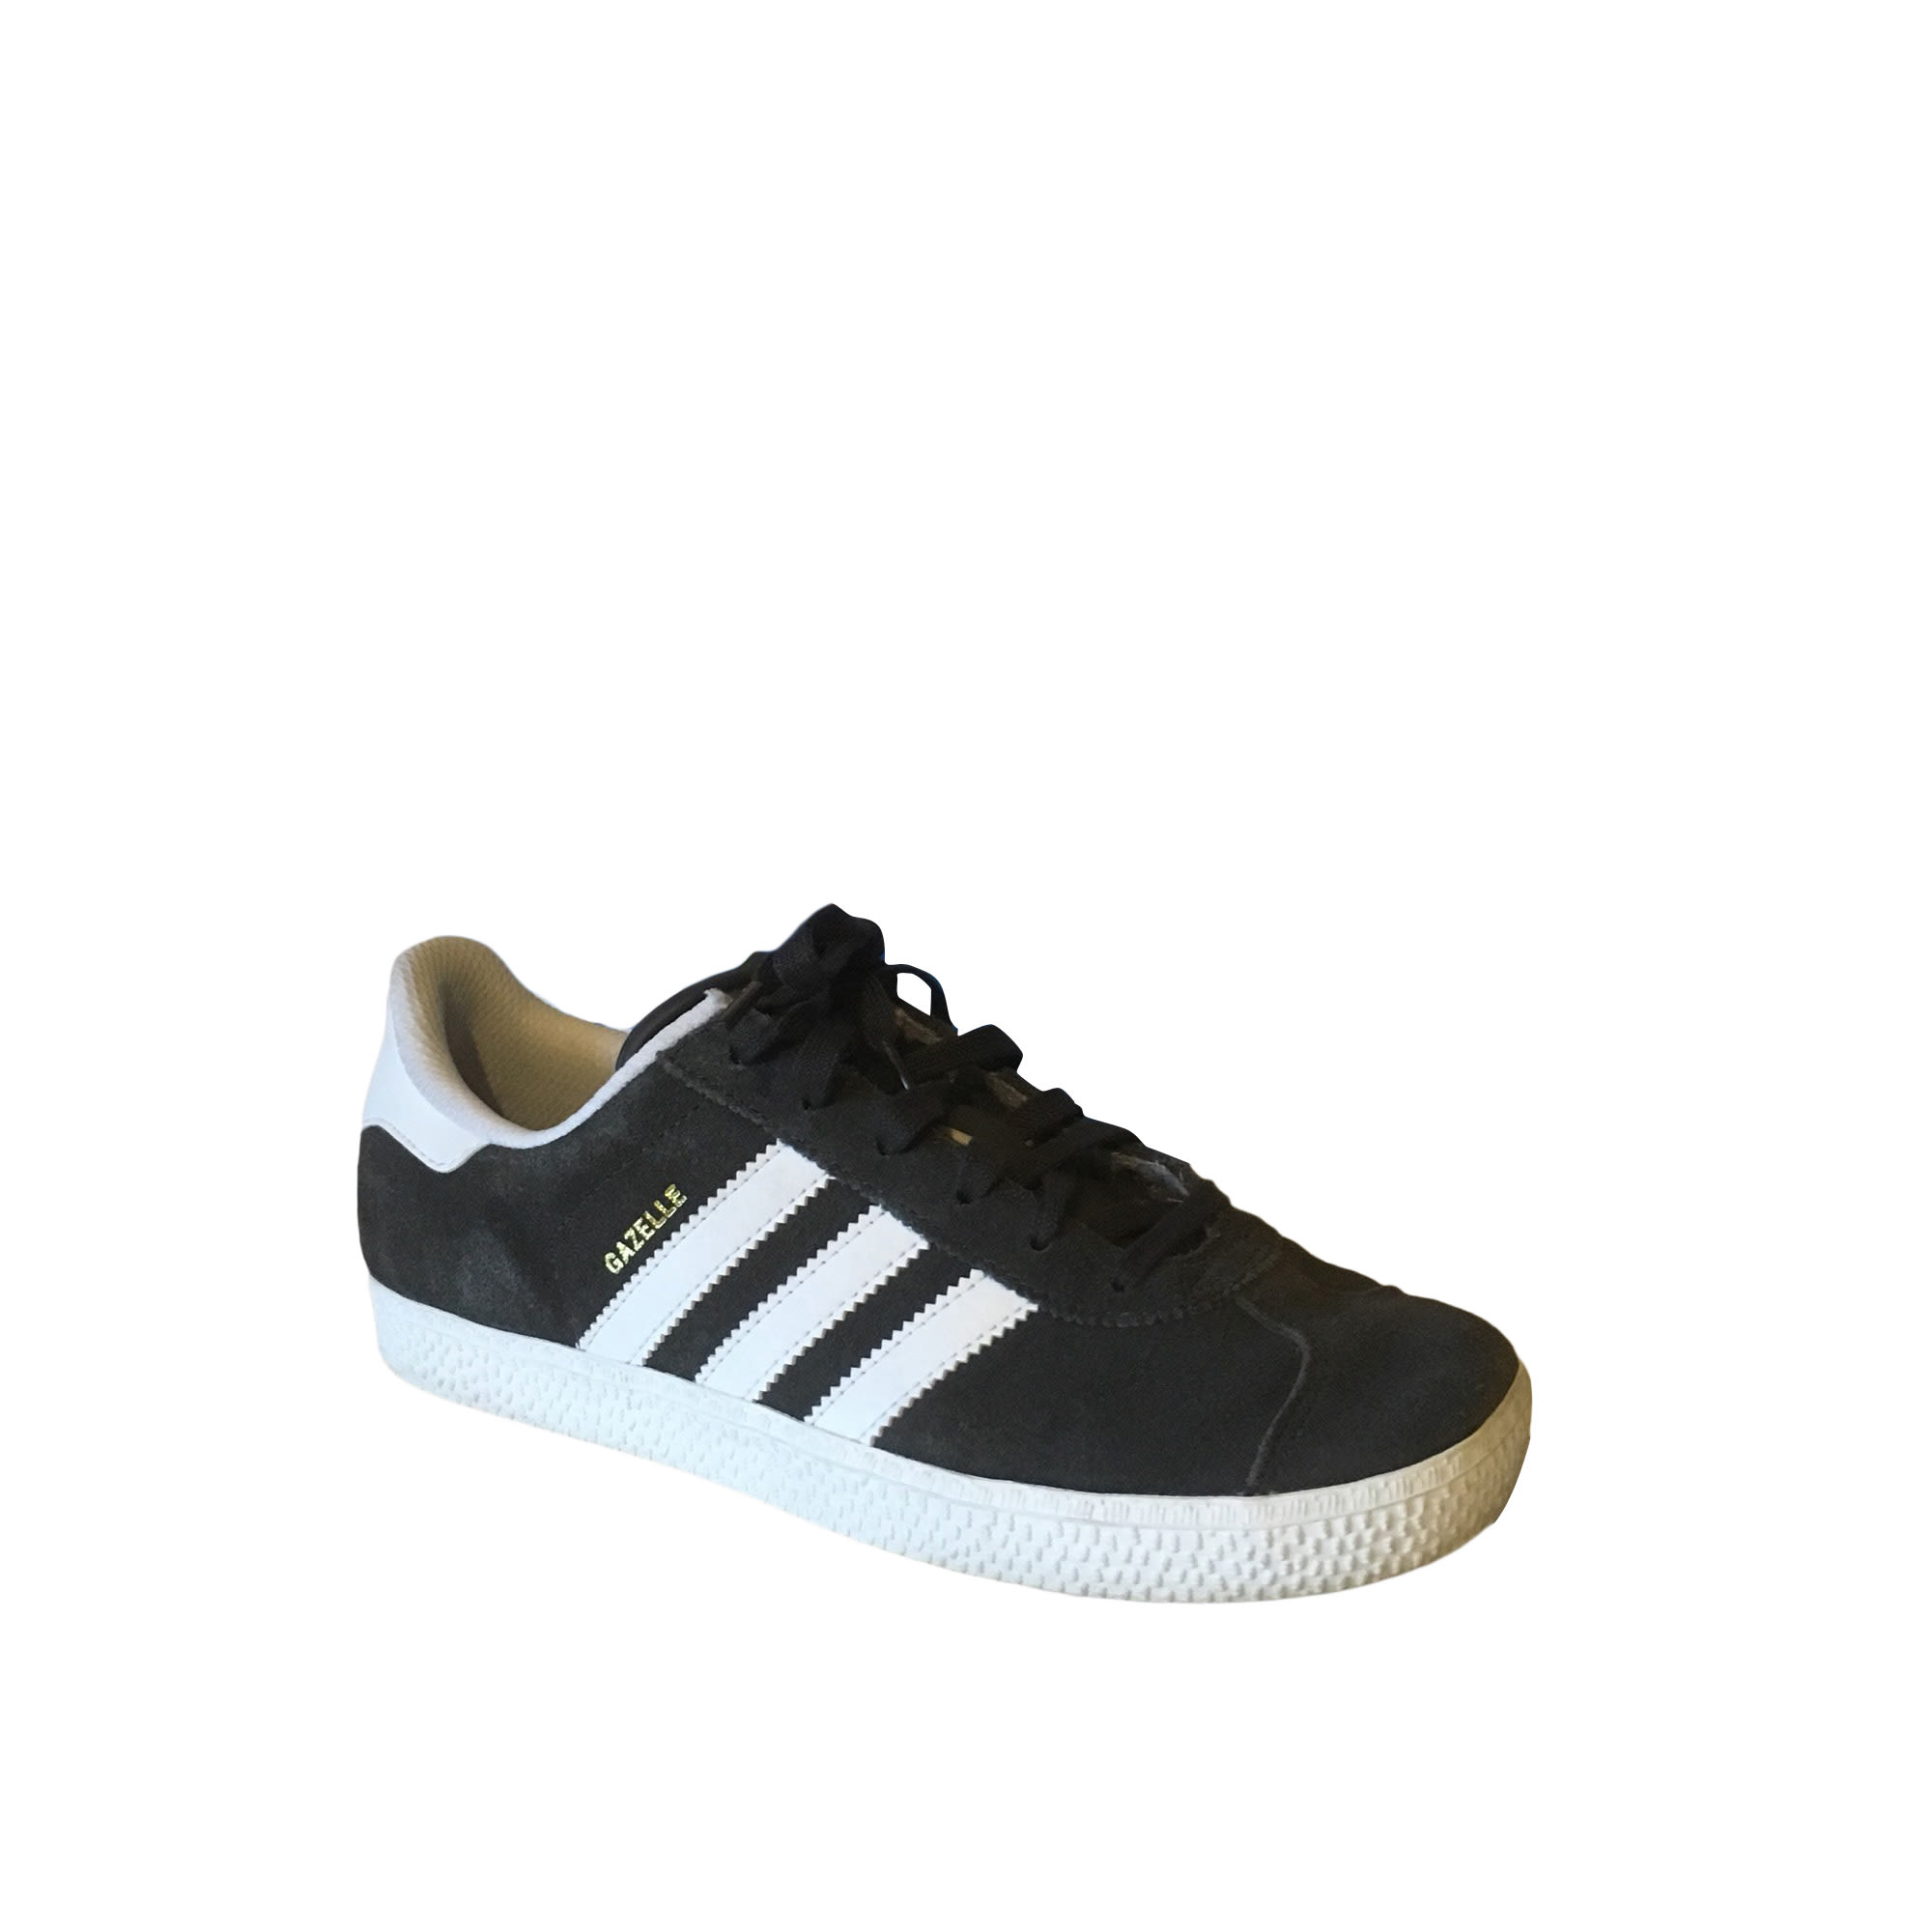 Baskets ADIDAS Gris, anthracite